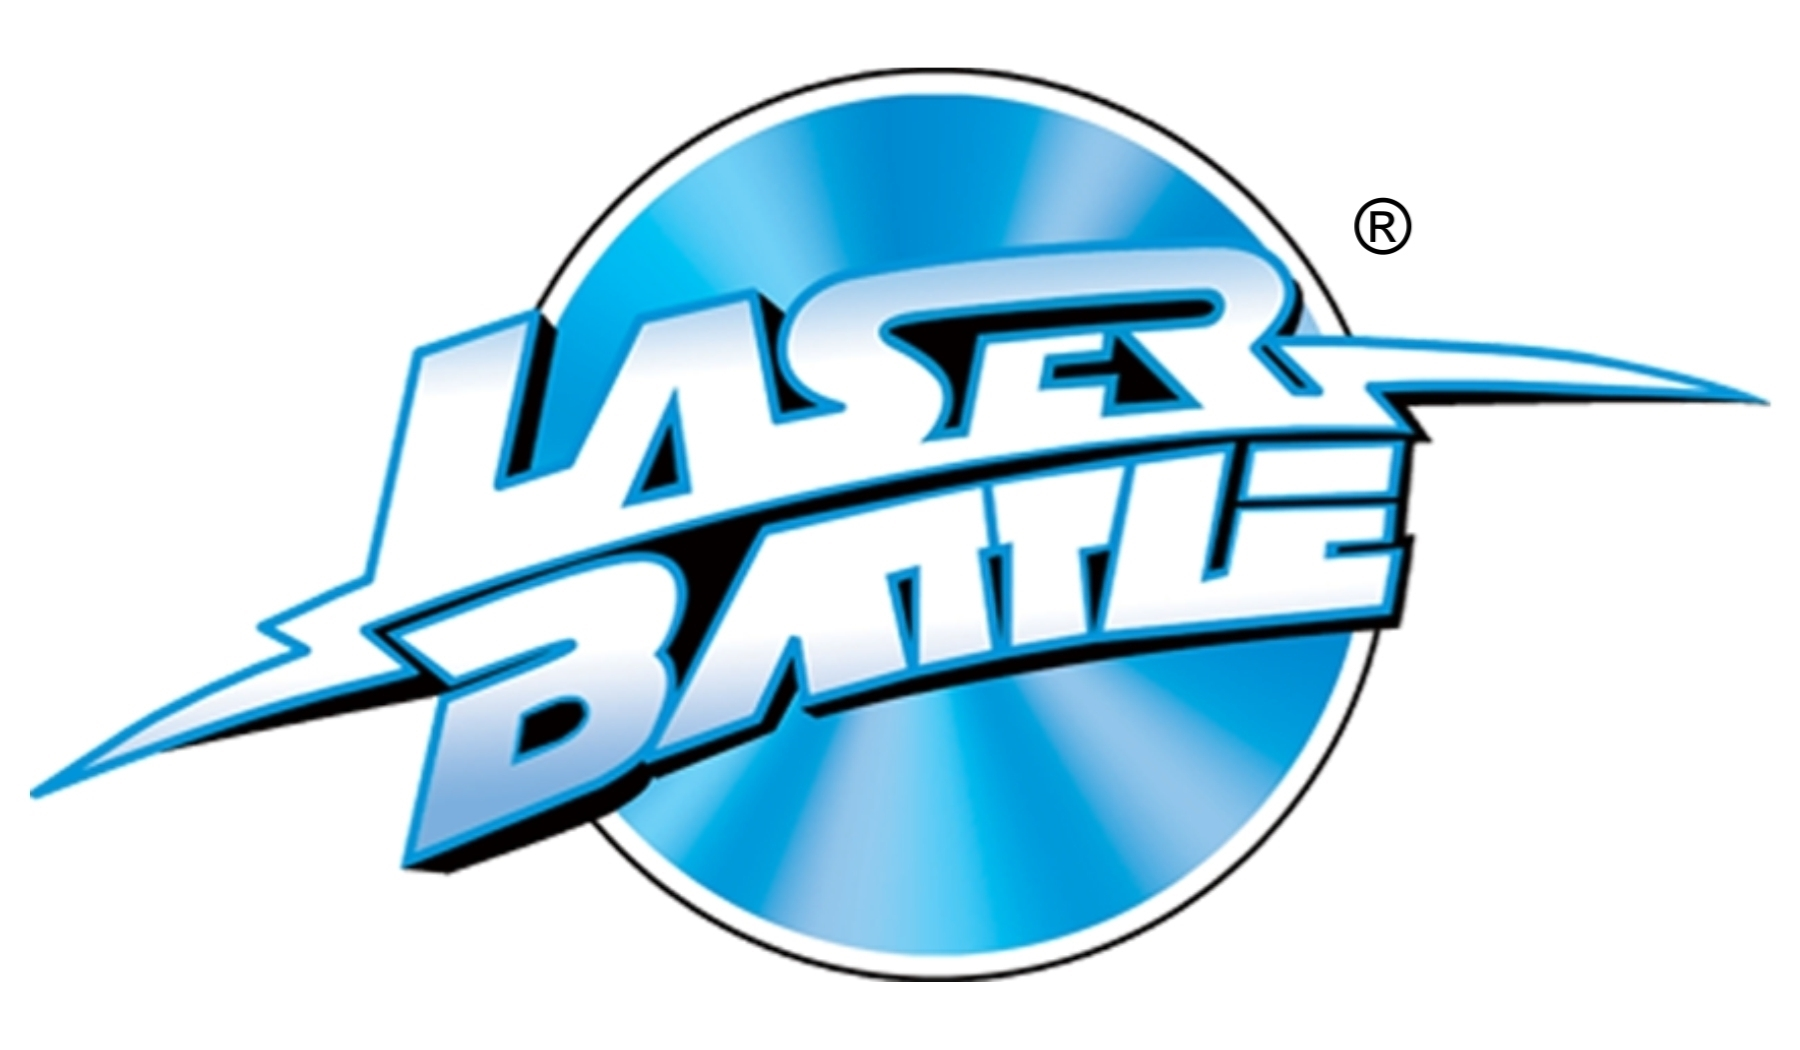 Picture of Laser Battle IPOH - 2 Games (Monday-Thursday)